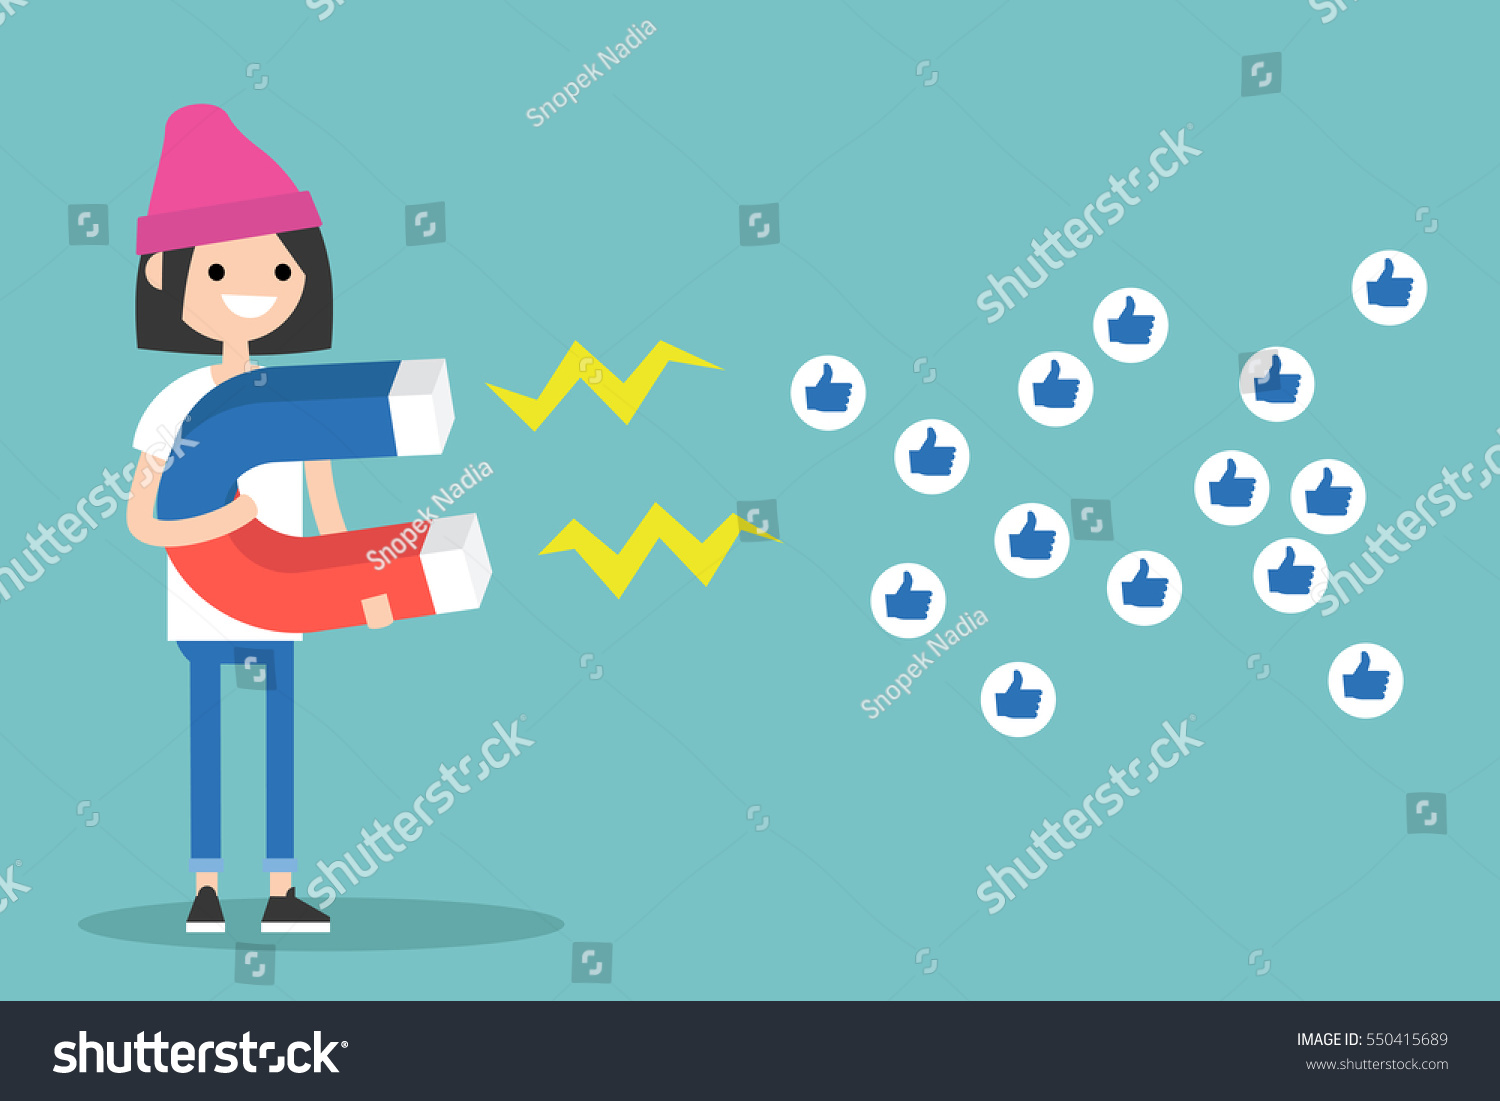 Social media marketing concept. Young brunette girl attracting likes with a huge magnet / editable flat vector illustration #550415689